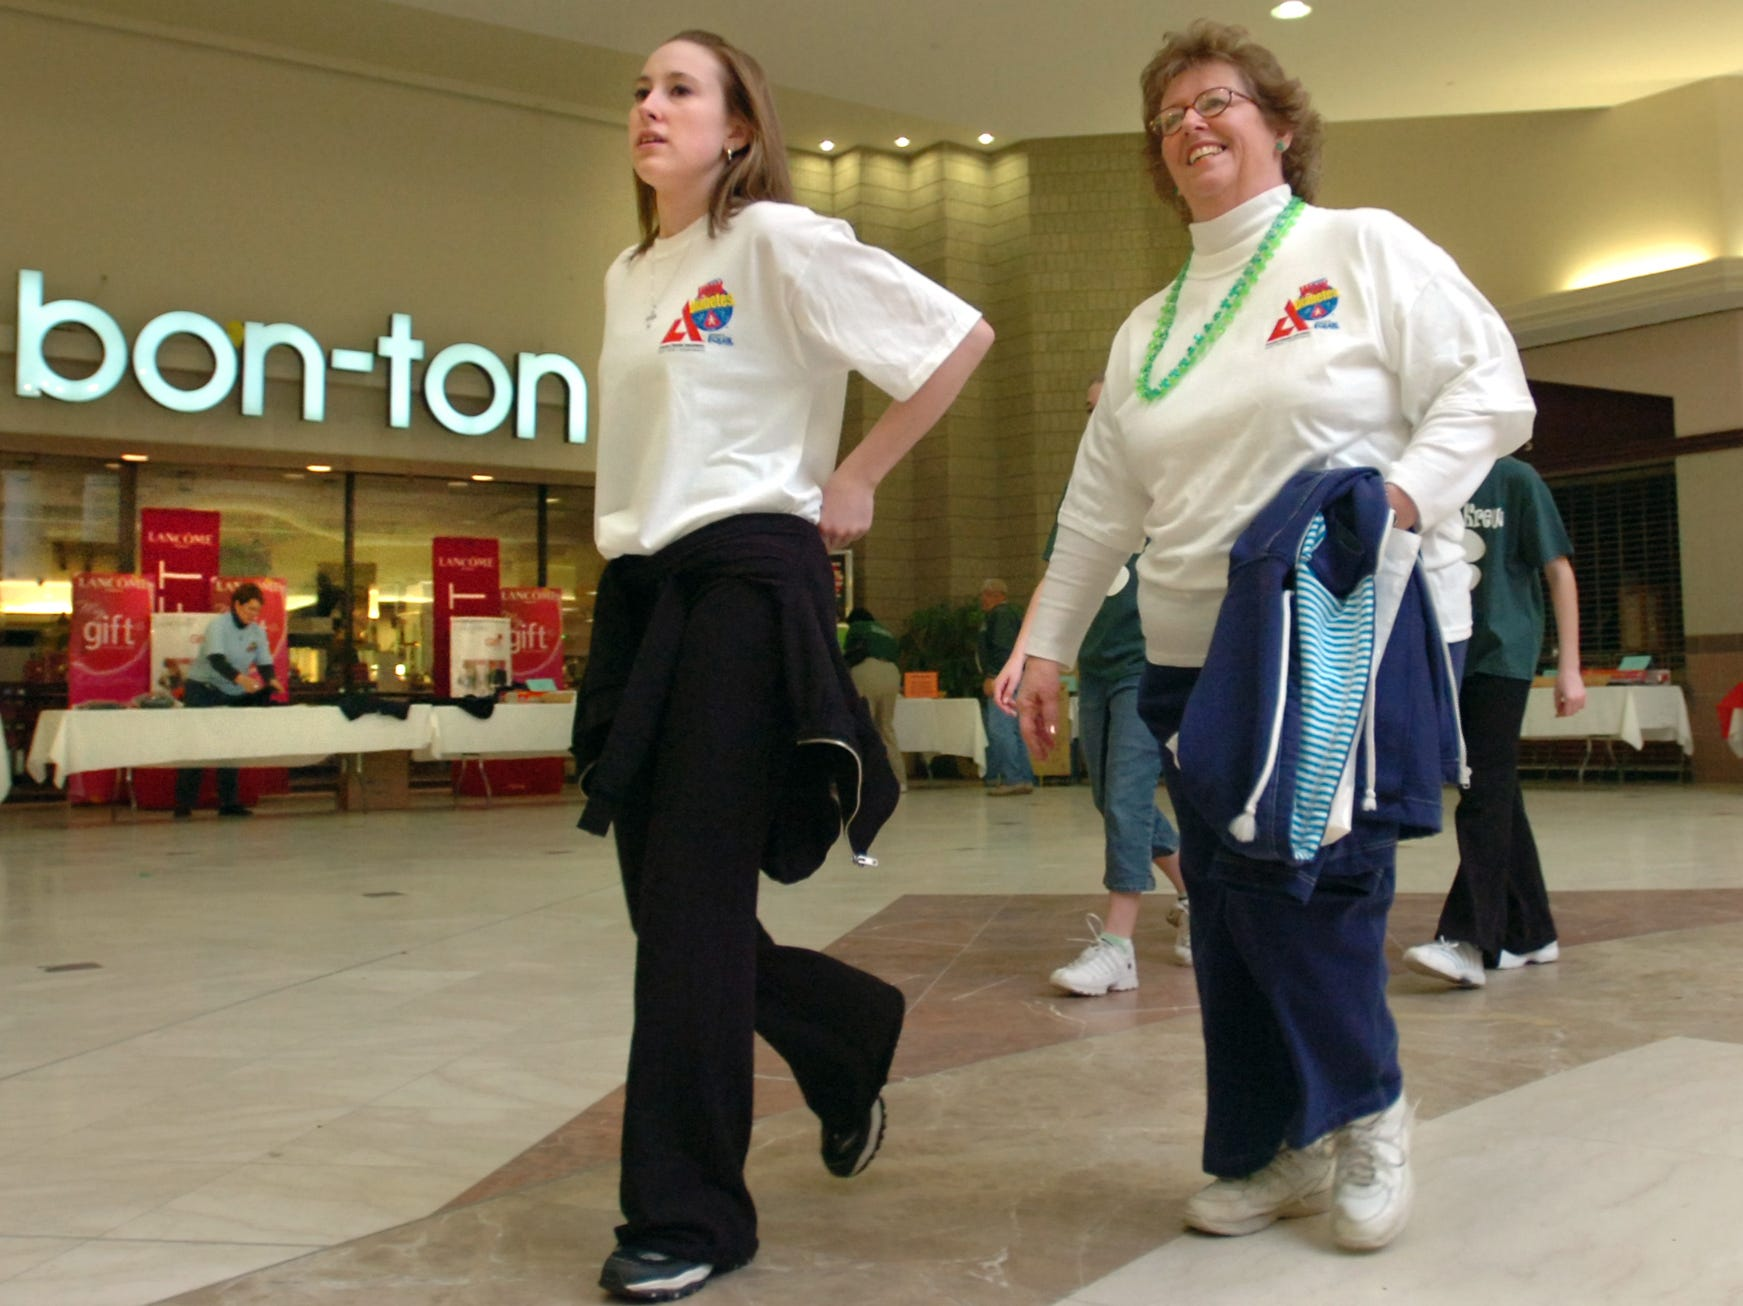 Participants in American Diabetes Association's annual event, America's Walk for Diabetes, make their way through the Oakdale Mall in Johnson City the morning of March 12, 2006. Proceeds from the event benefit the American Diabetes Association.